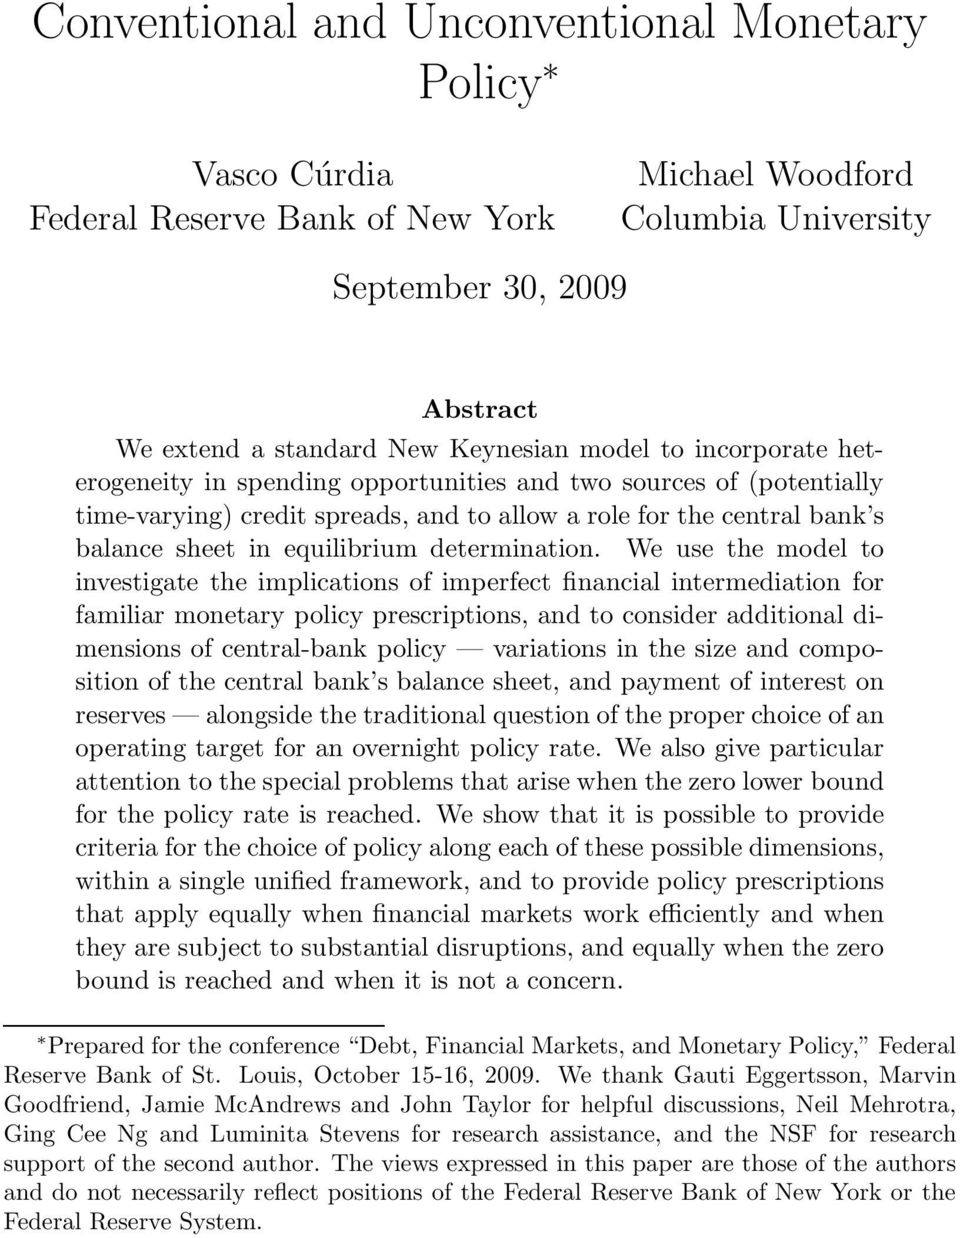 We use the model to investigate the implications of imperfect financial intermediation for familiar monetary policy prescriptions, and to consider additional dimensions of central-bank policy